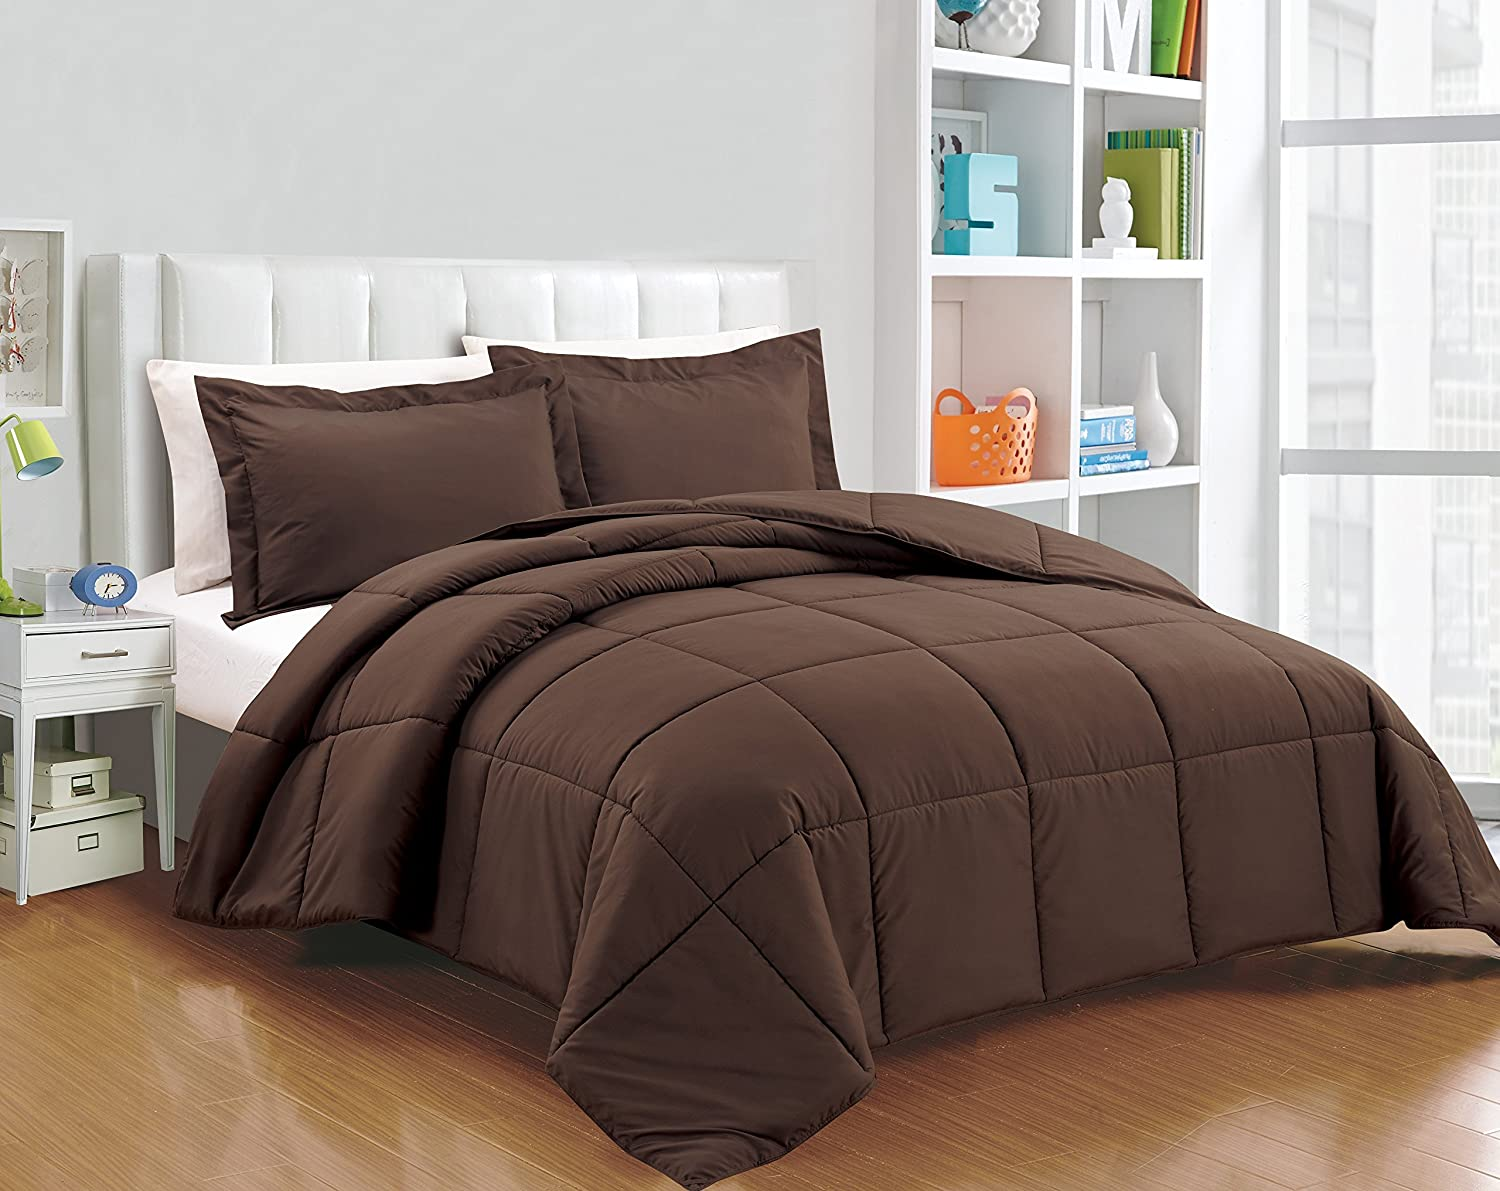 3-piece Down Alternative Comforter Set